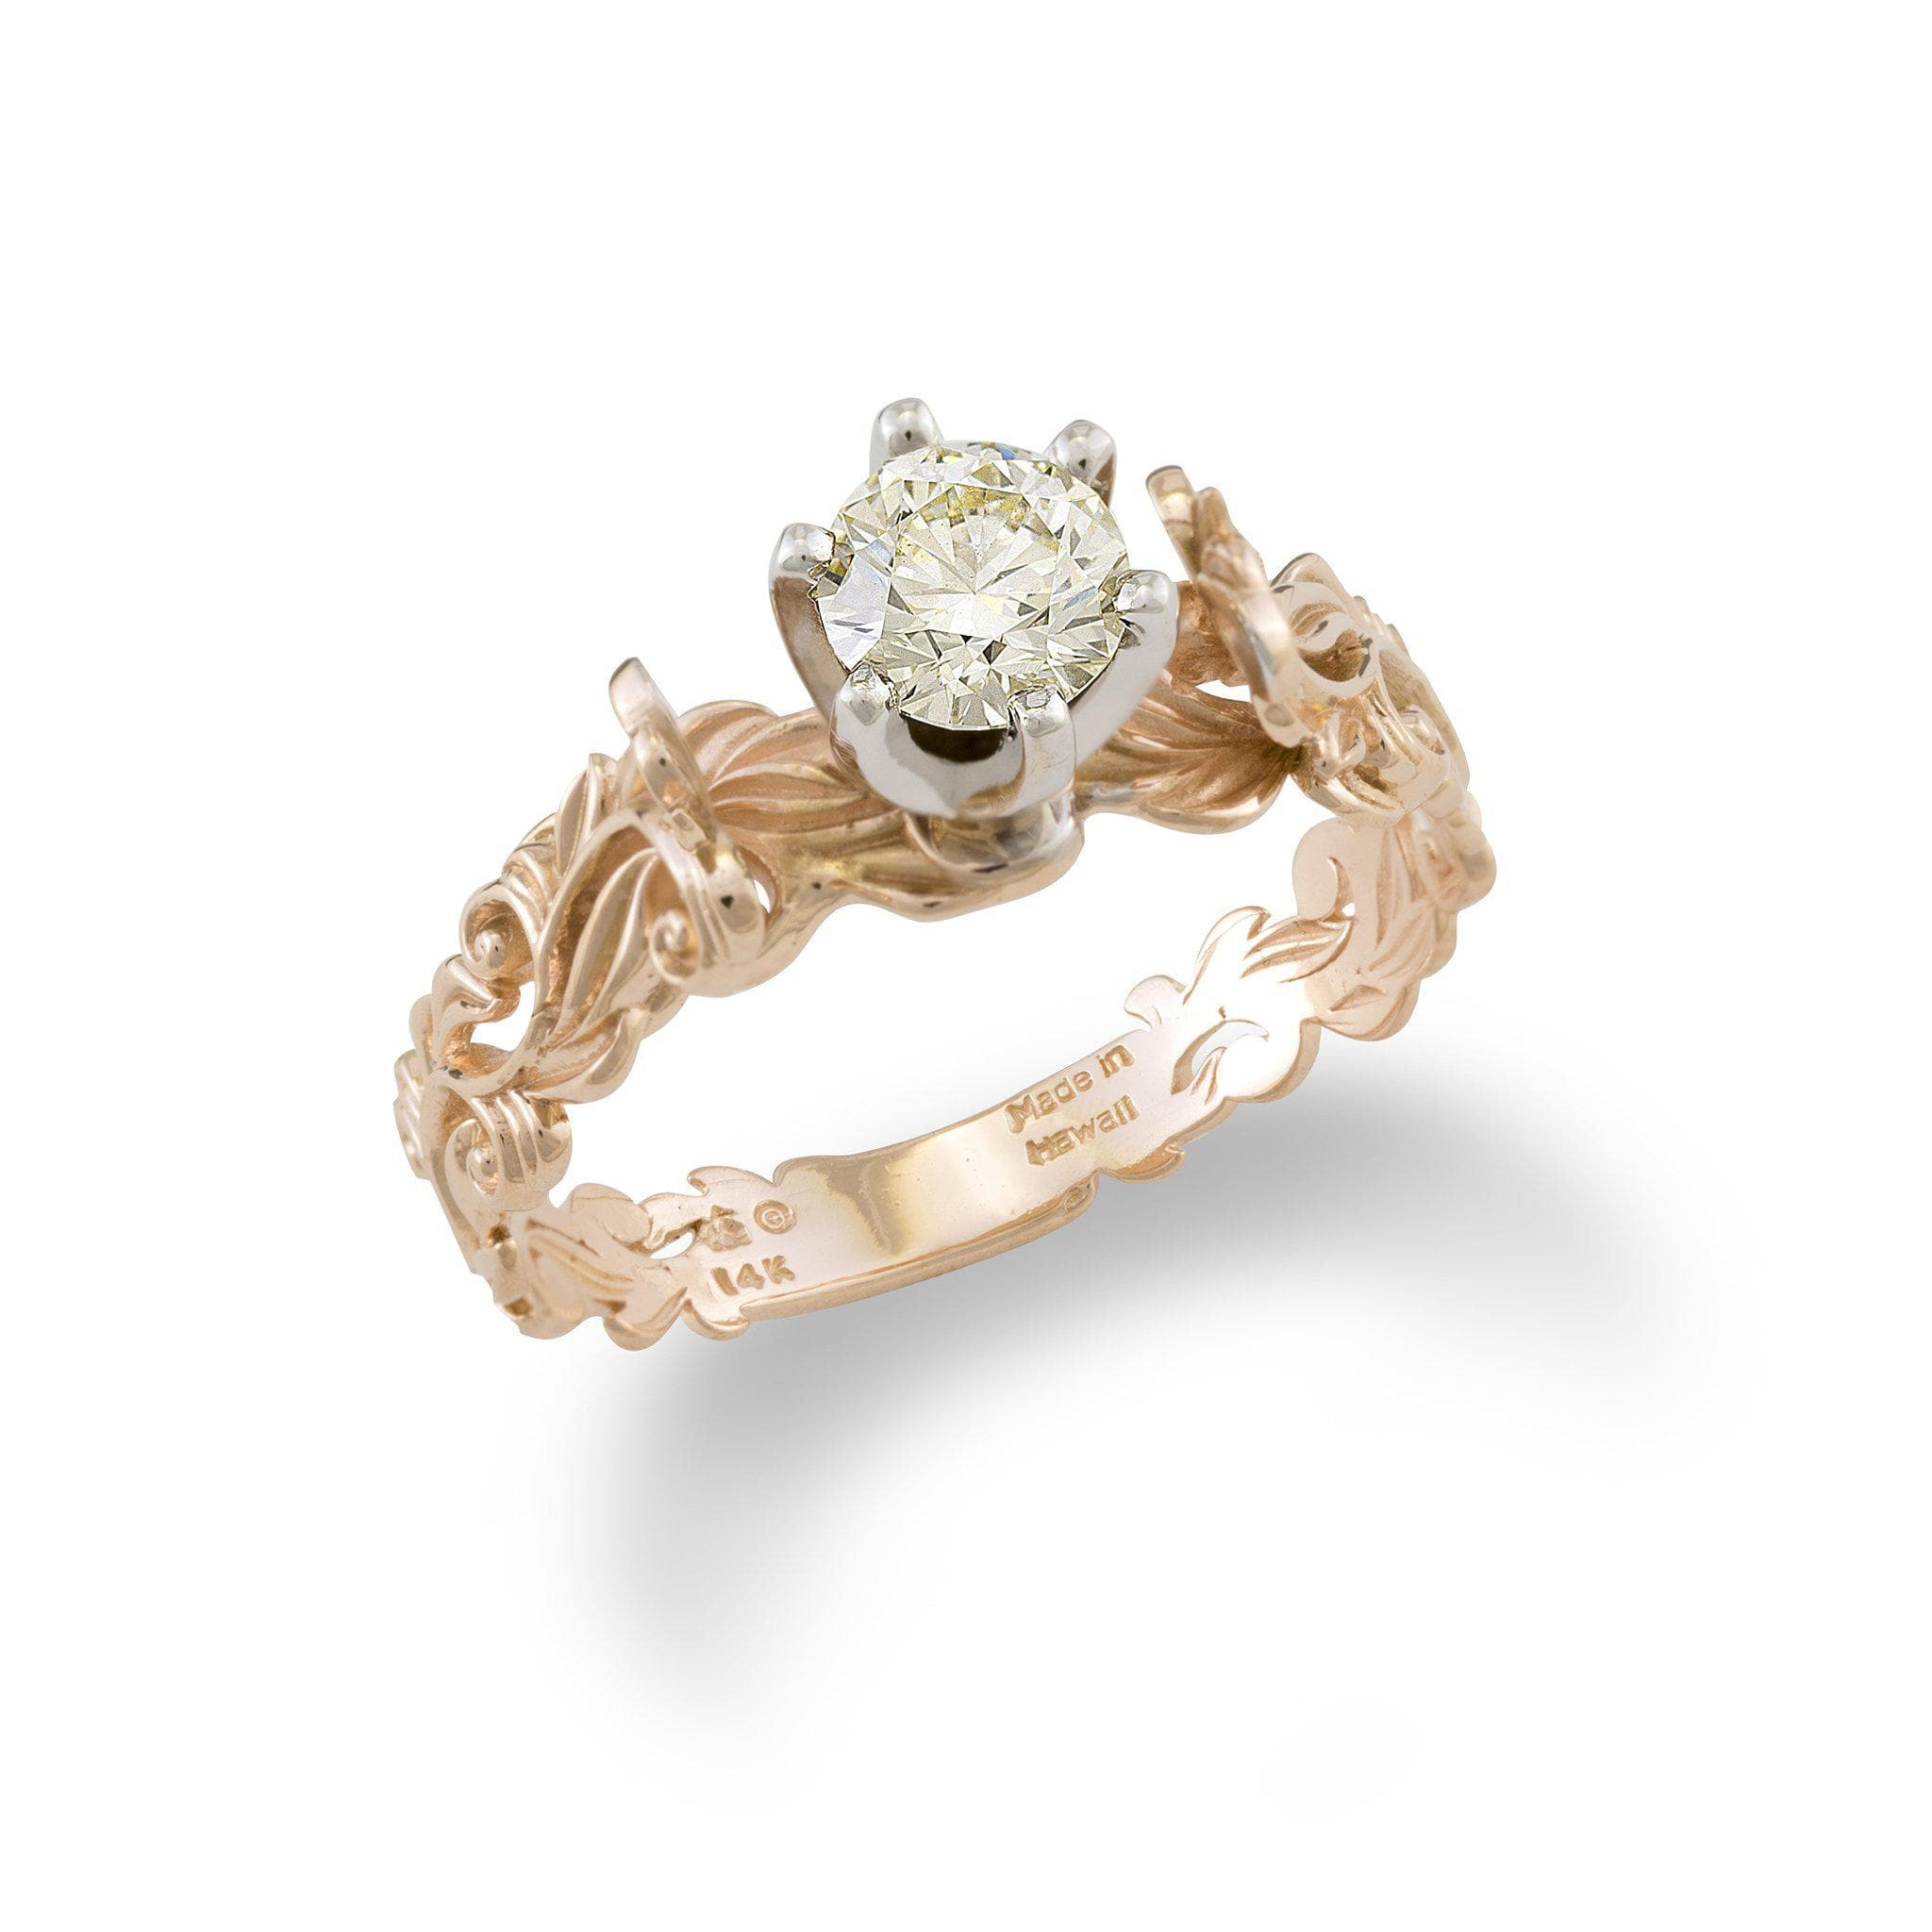 bands rings and matching hers com cheap wedding kay jewelers incredible matvuk within wonderful his affordable